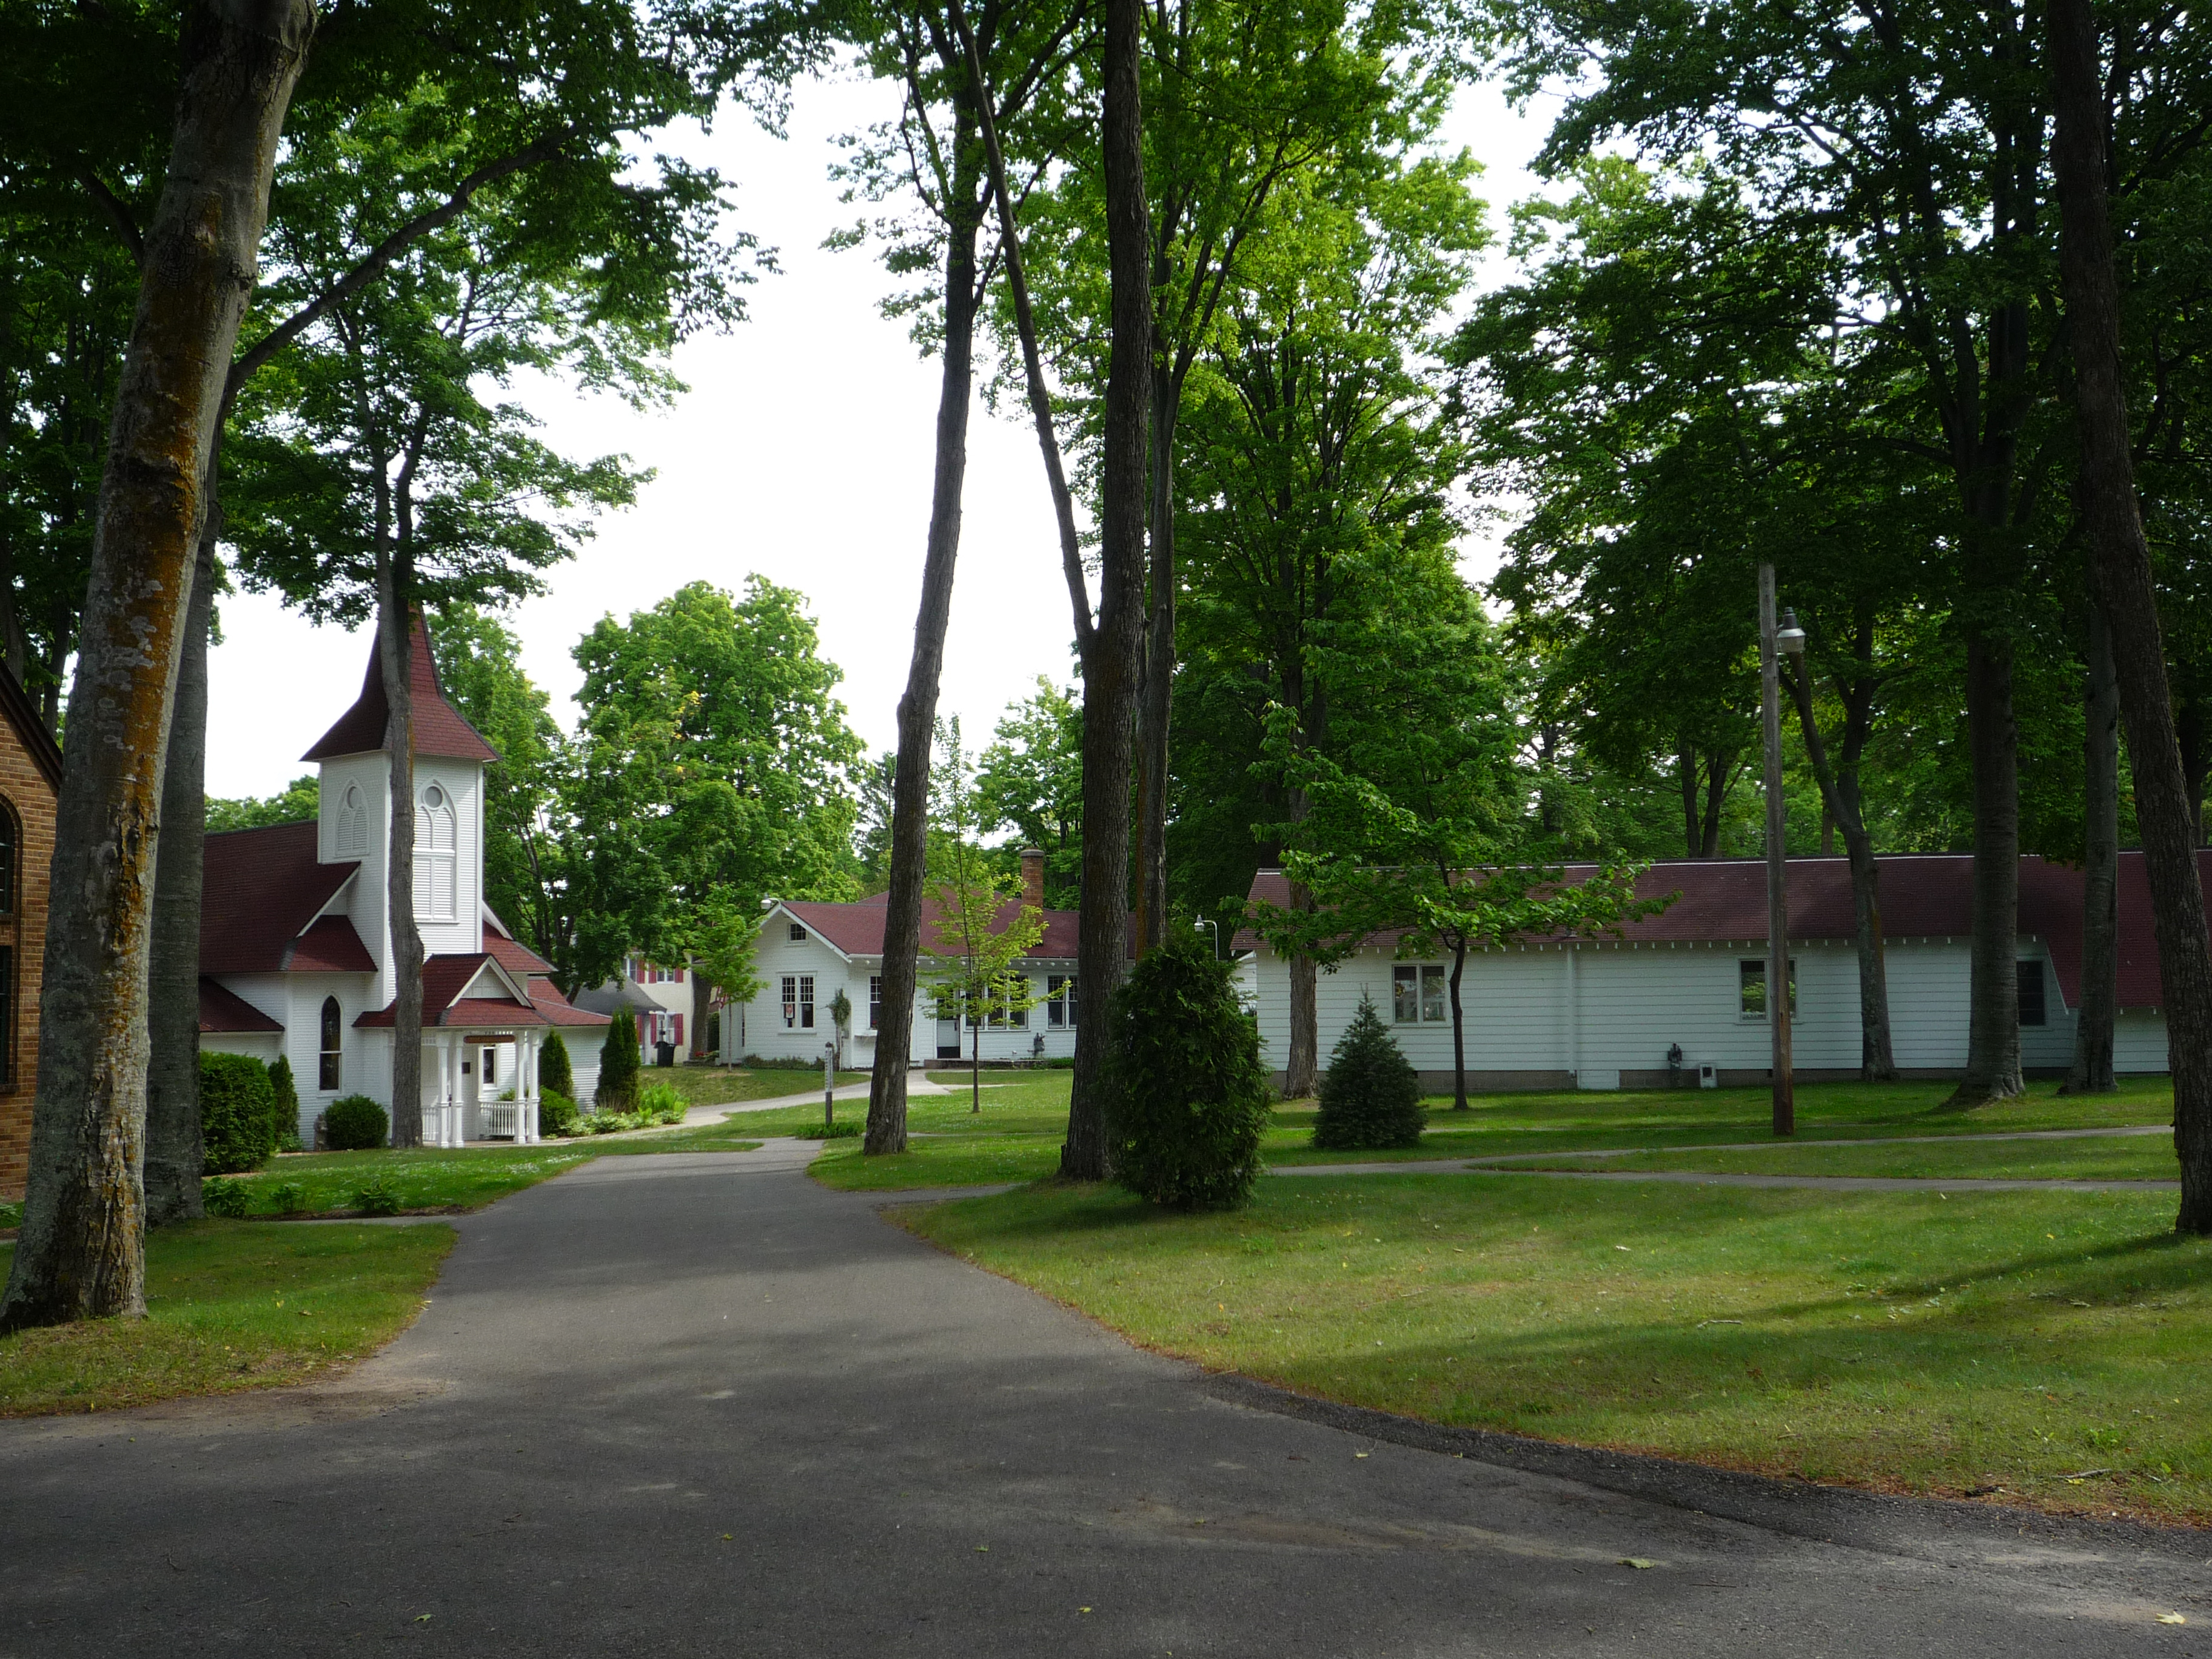 A quiet road runs past a church building in Bay View